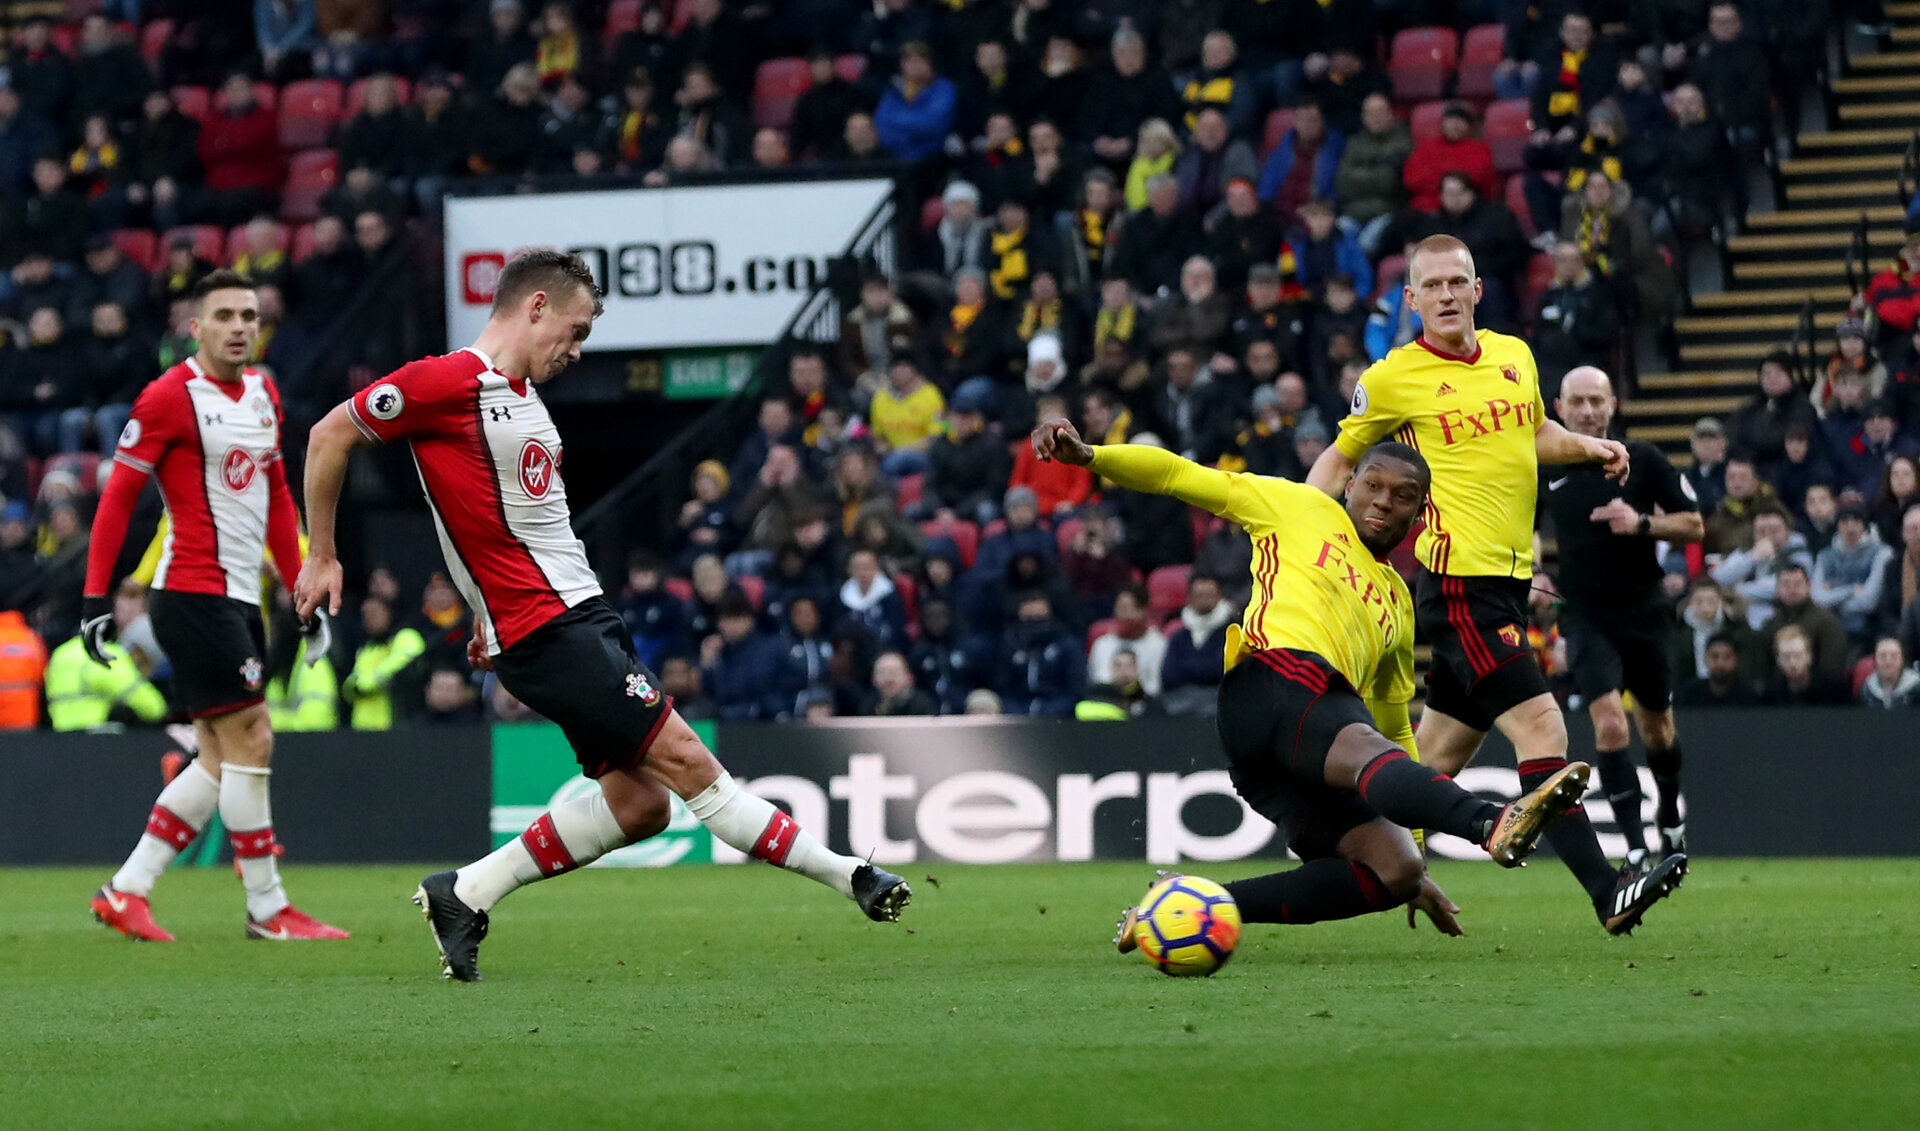 WATFORD, ENGLAND - JANUARY 13: James Ward-Prowse of Southampton scores his second goal during the Premier League match between Watford and Southampton at Vicarage Road on January 13, 2018 in Watford, England. (Photo by Matt Watson/Southampton FC via Getty Images)